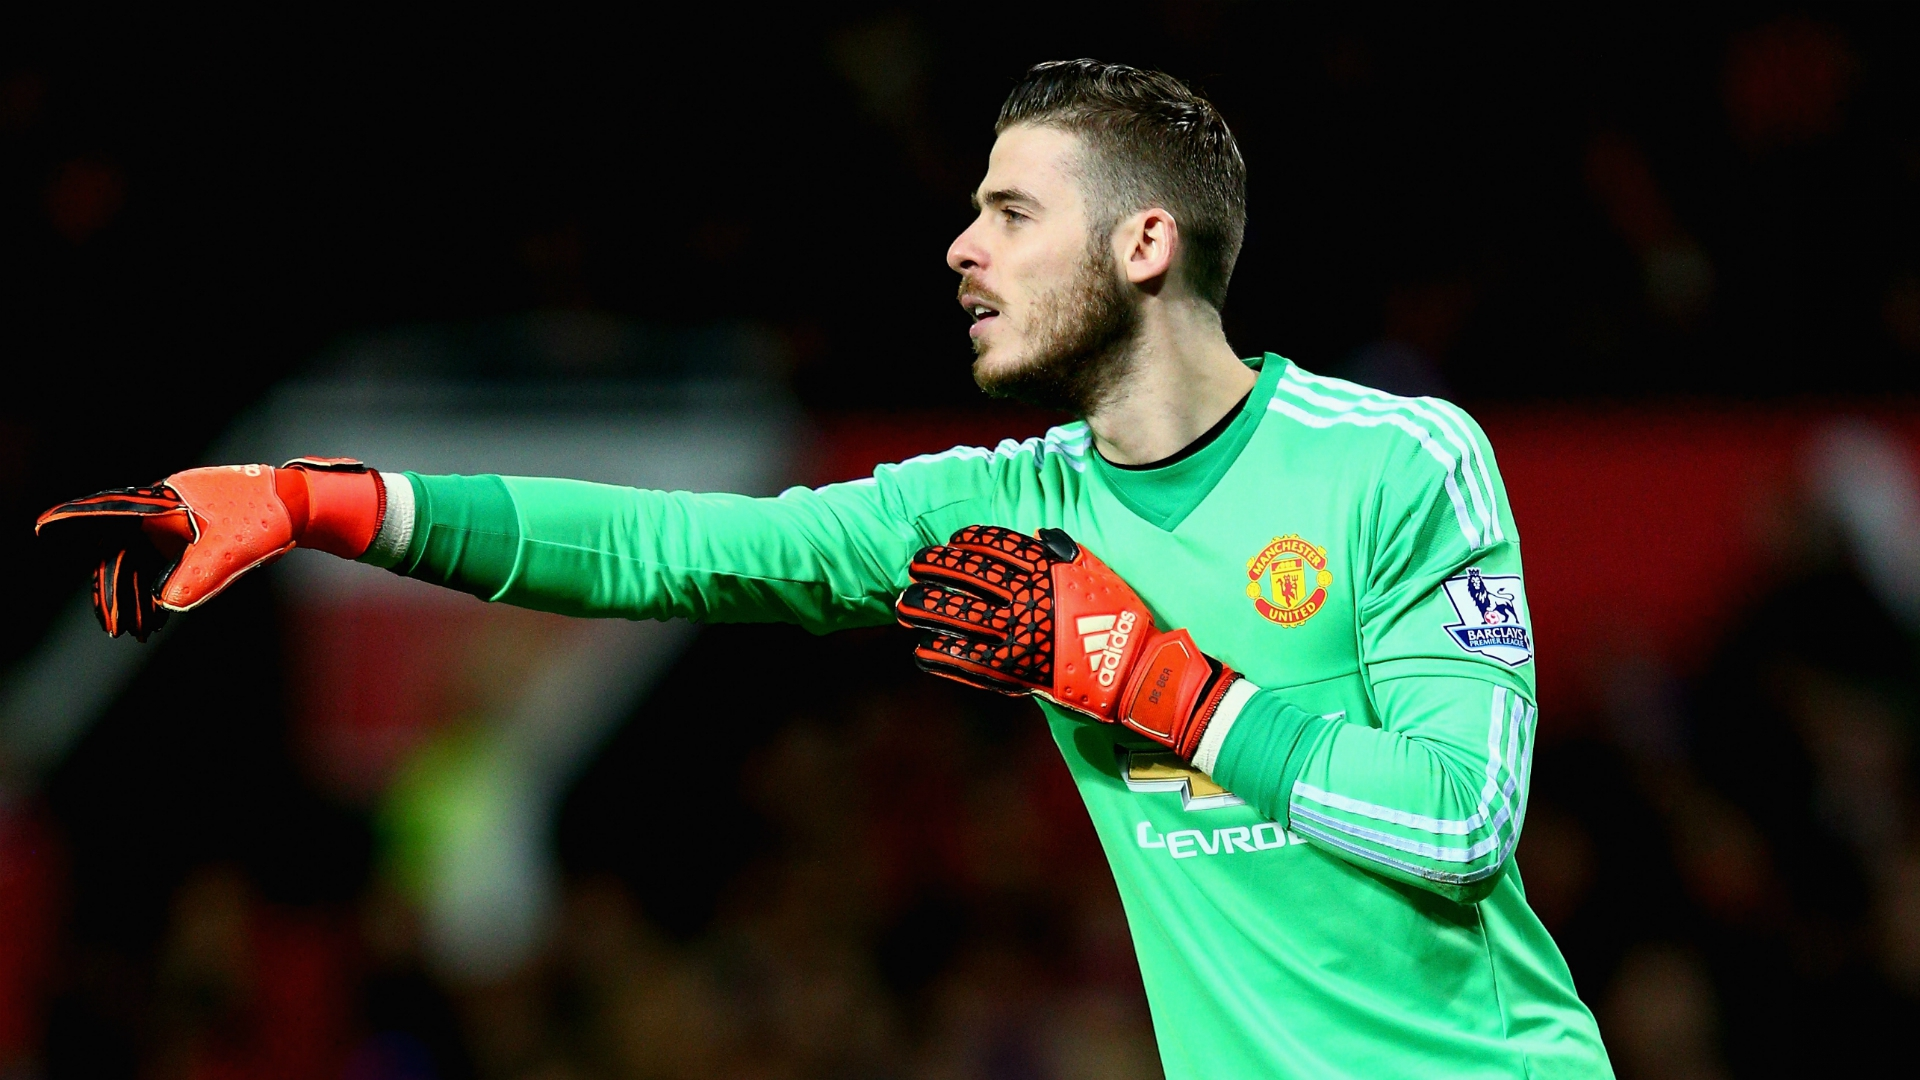 Cute Animated Wallpapers For Mobile David De Gea Wallpapers